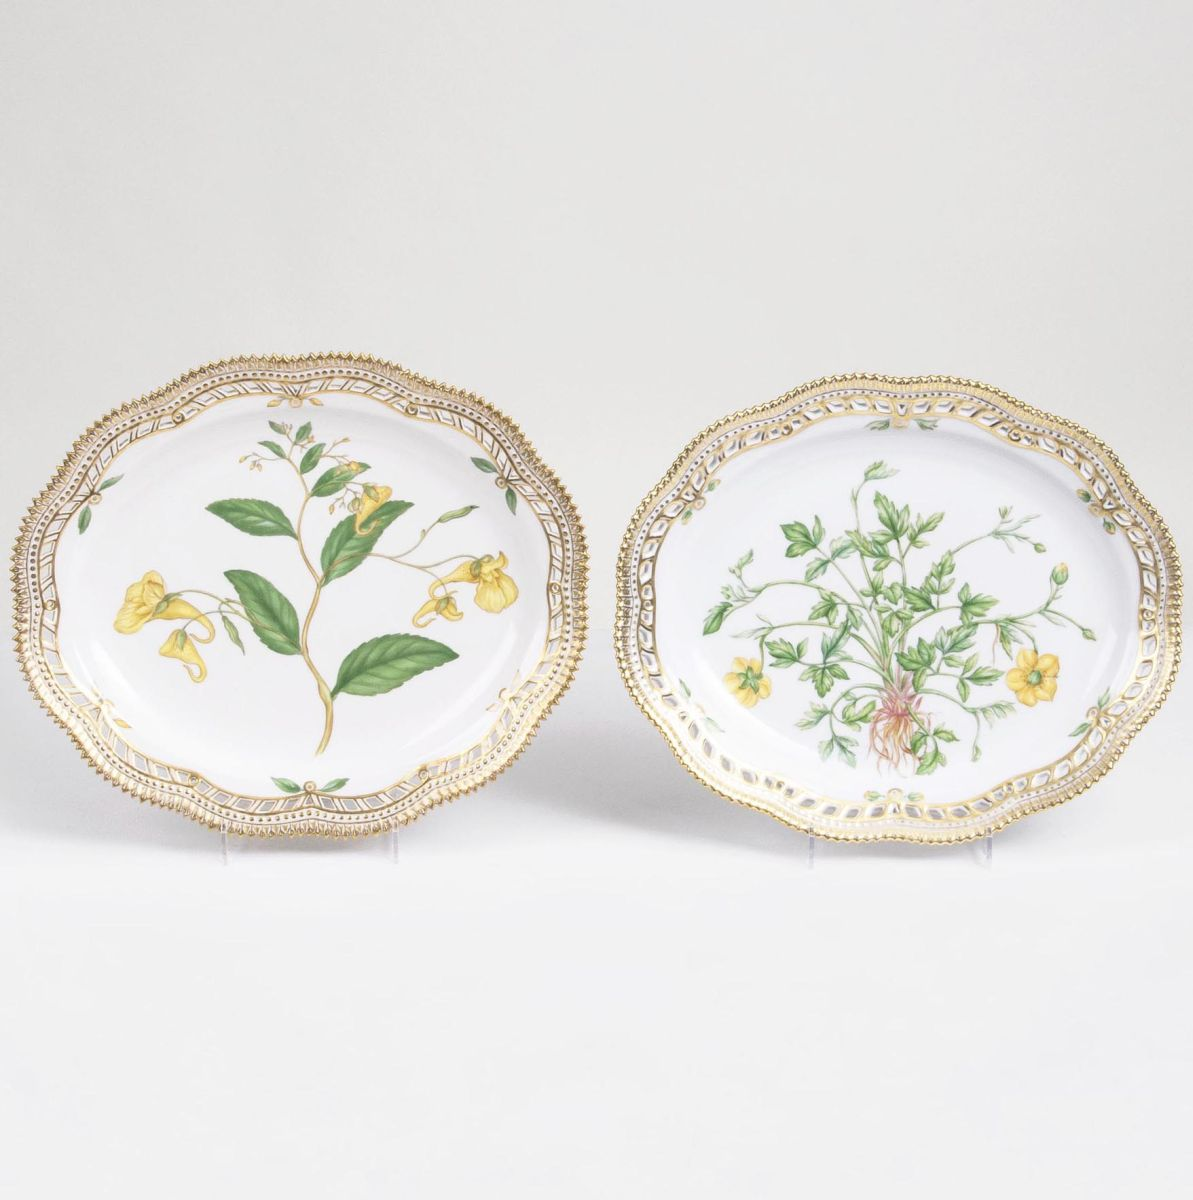 A Pair of small Oval Flora Danica Dishes with Botanical Specimens